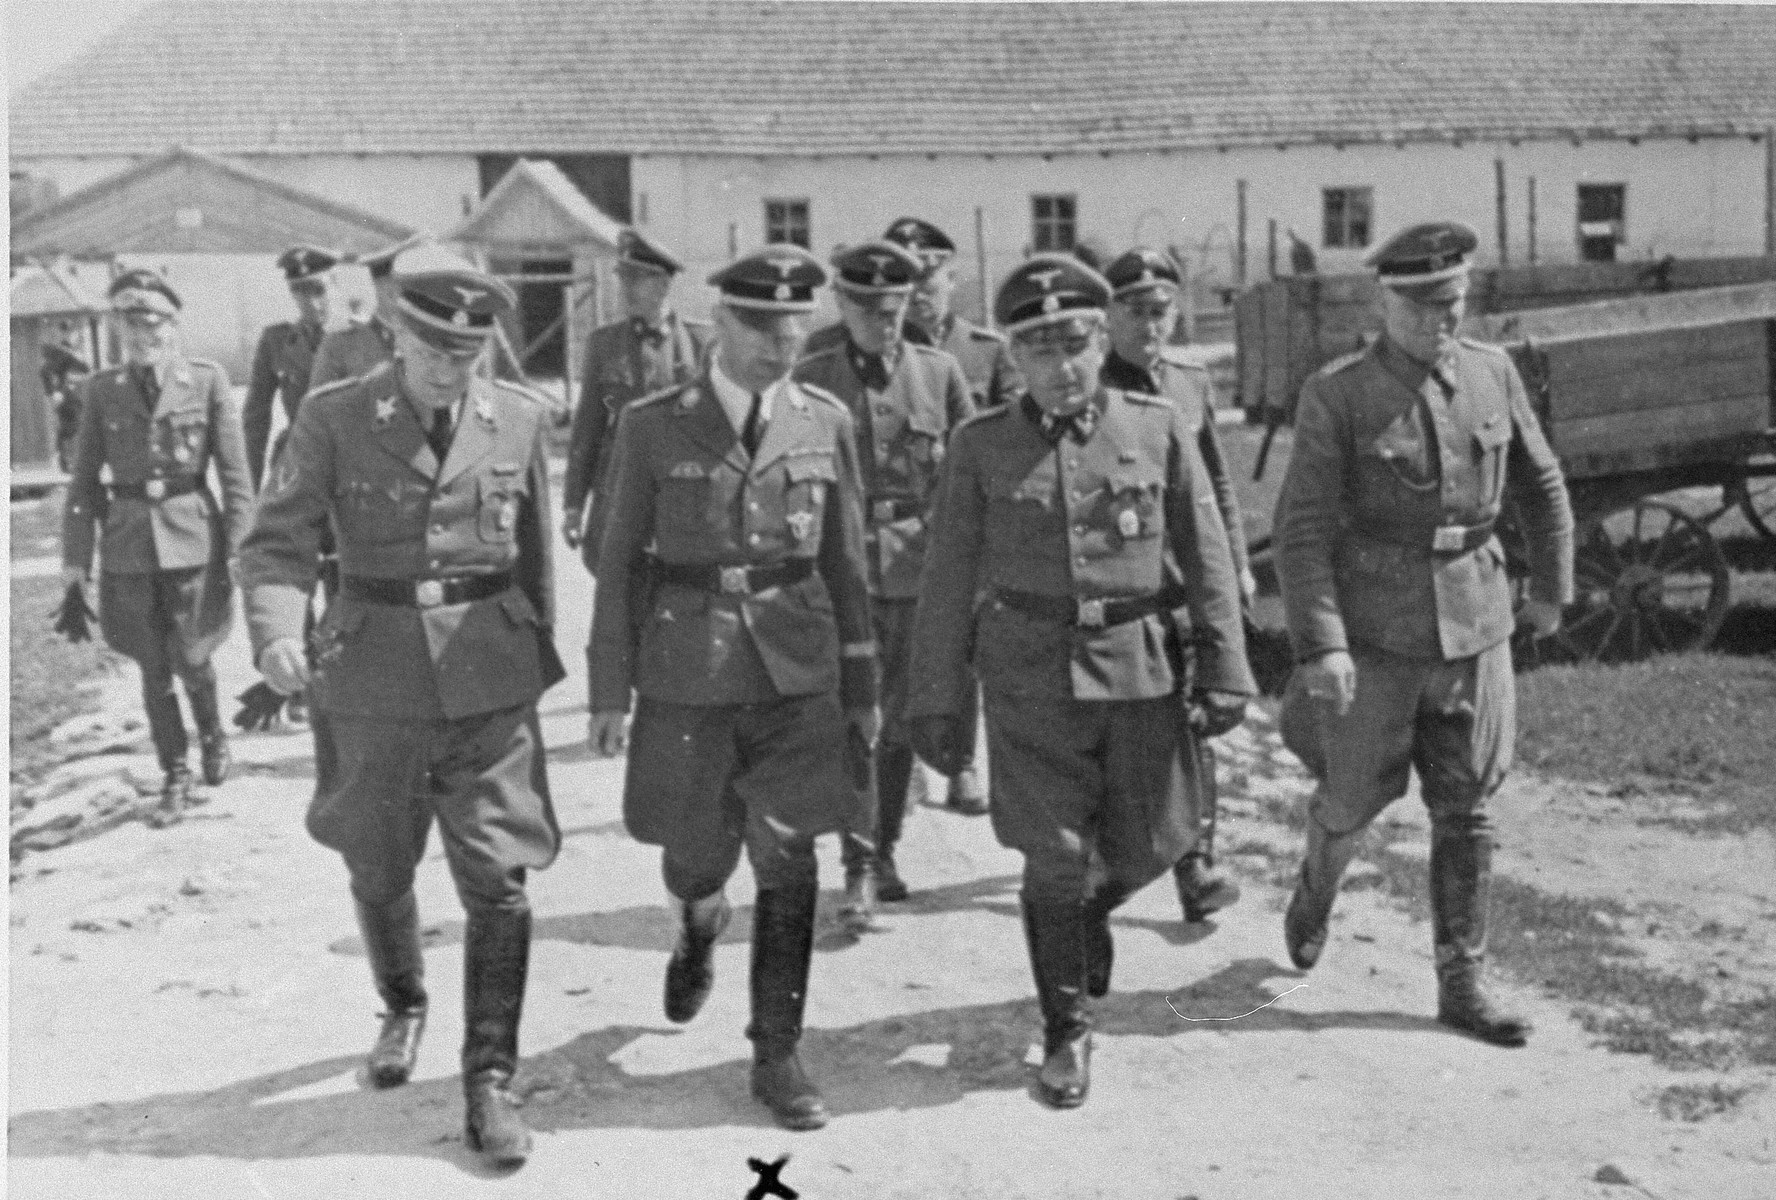 Reichsfuehrer SS Heinrich Himmler tours a Jewish labor camp in Galicia along the main supply route in the company of camp commandant, Friedrich Warzok.  Pictured in the front row from left to right are: Johannes Jost, Heinrich Himmler, Friedrich Warzok.  Also pictured are Josef Kirmaier (between Himmler and Warzok in the second row) and Fritz Katzmann (second row, left).